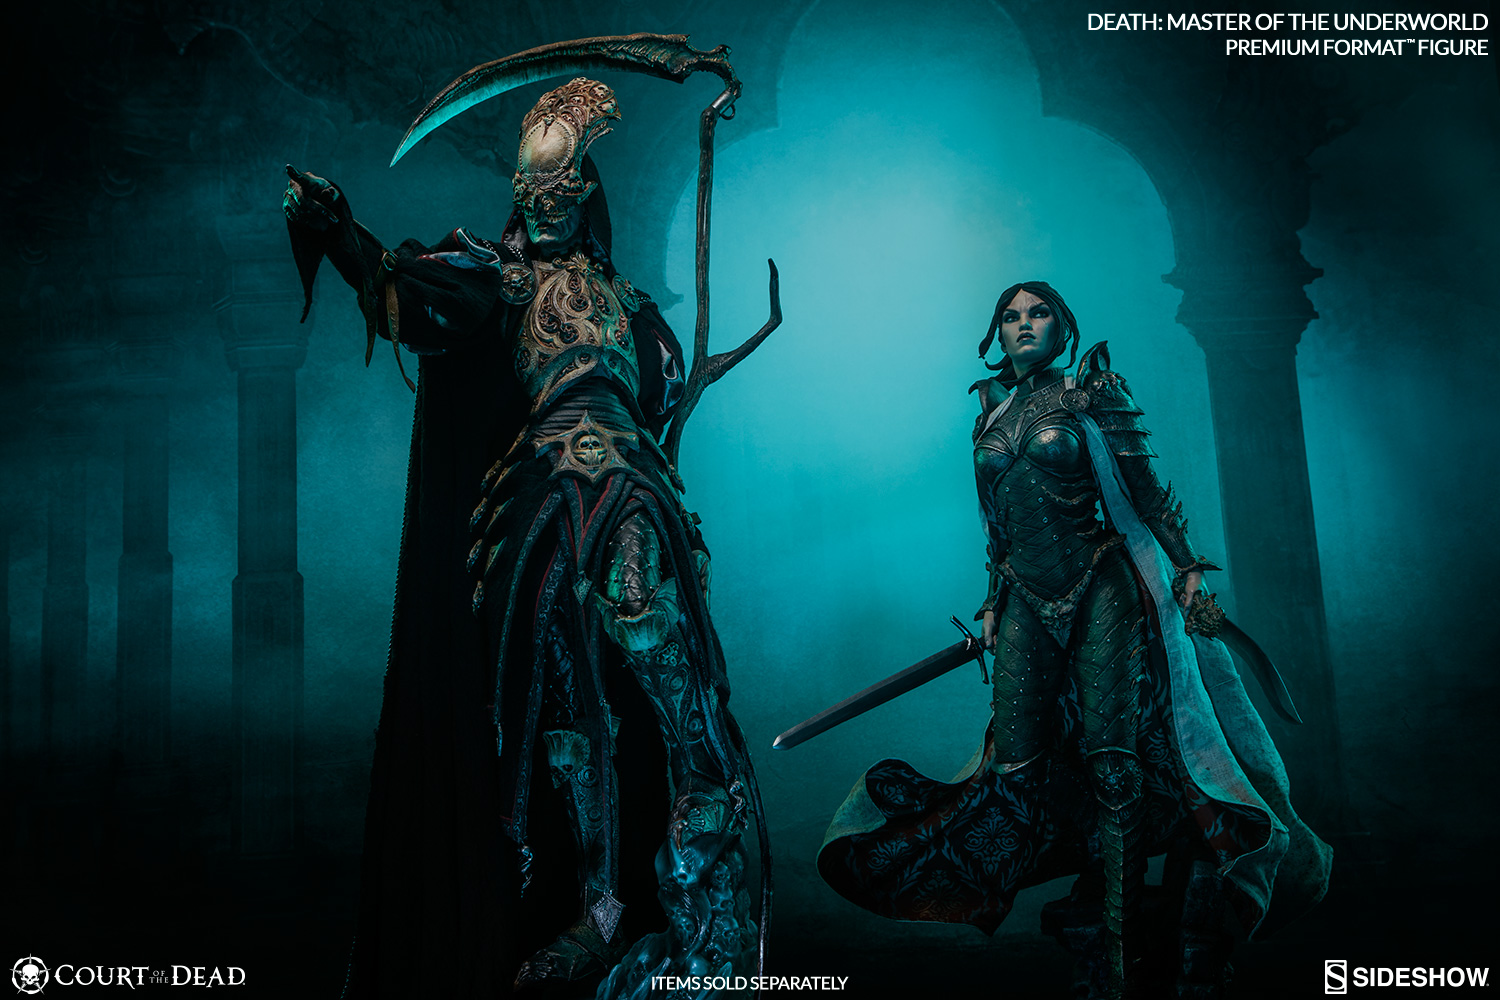 Link a court-of-the-dead-death-master-of-the-underworld-premium-format-300396-14